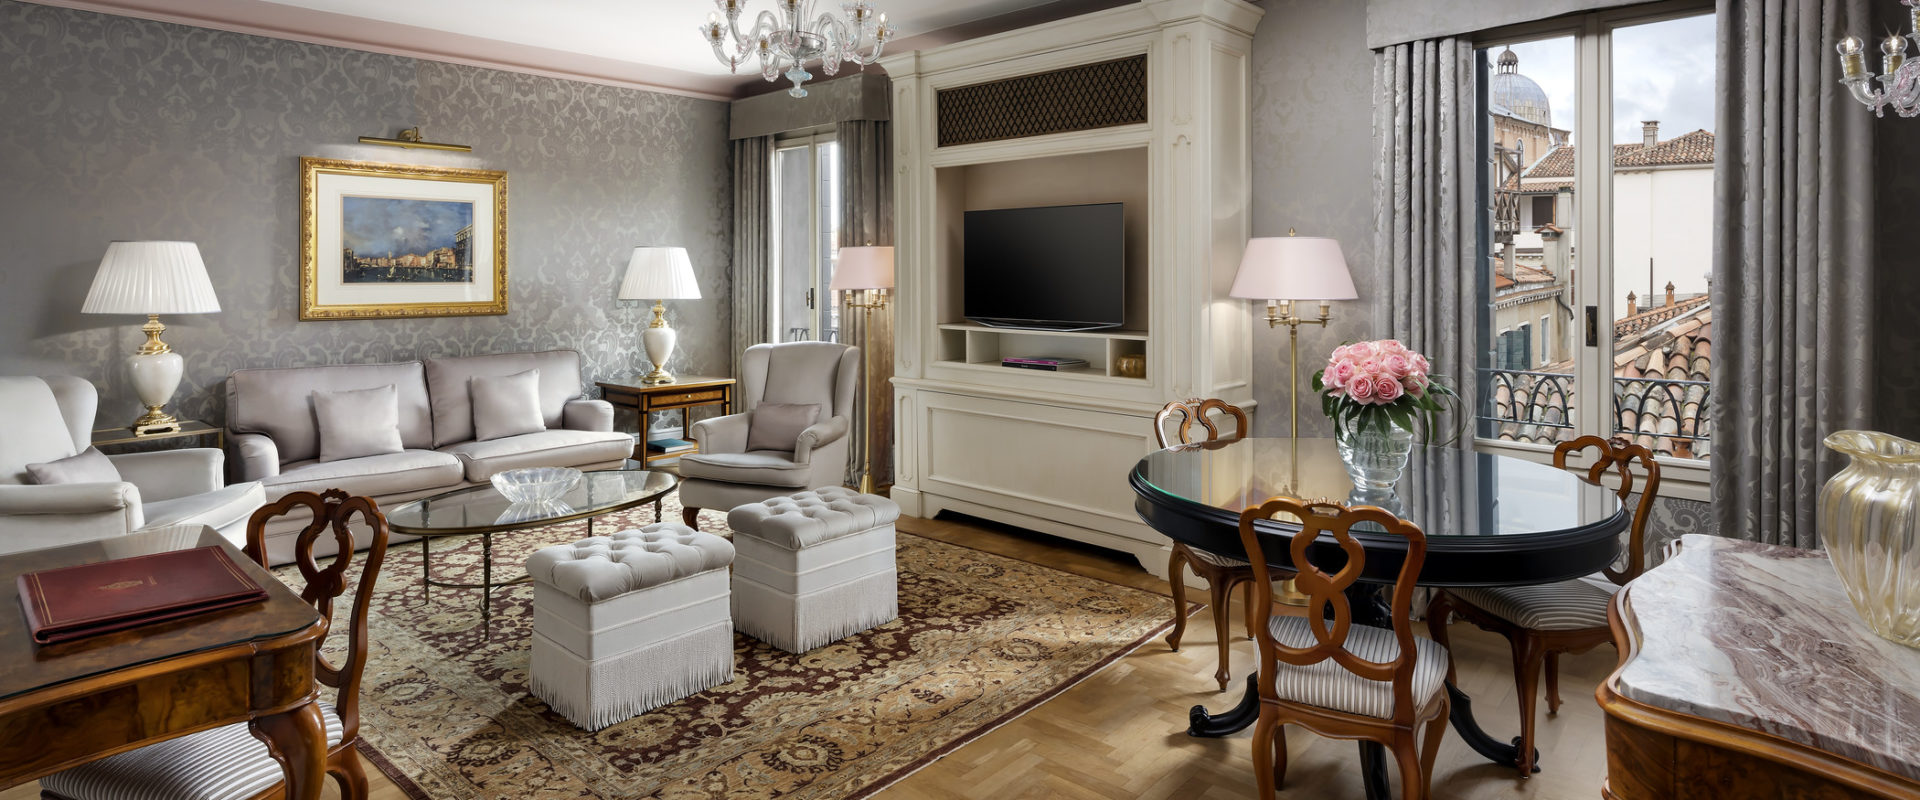 Gran Dandolo Suite at Hotel Danieli, a Luxury Collection Hotel Venice